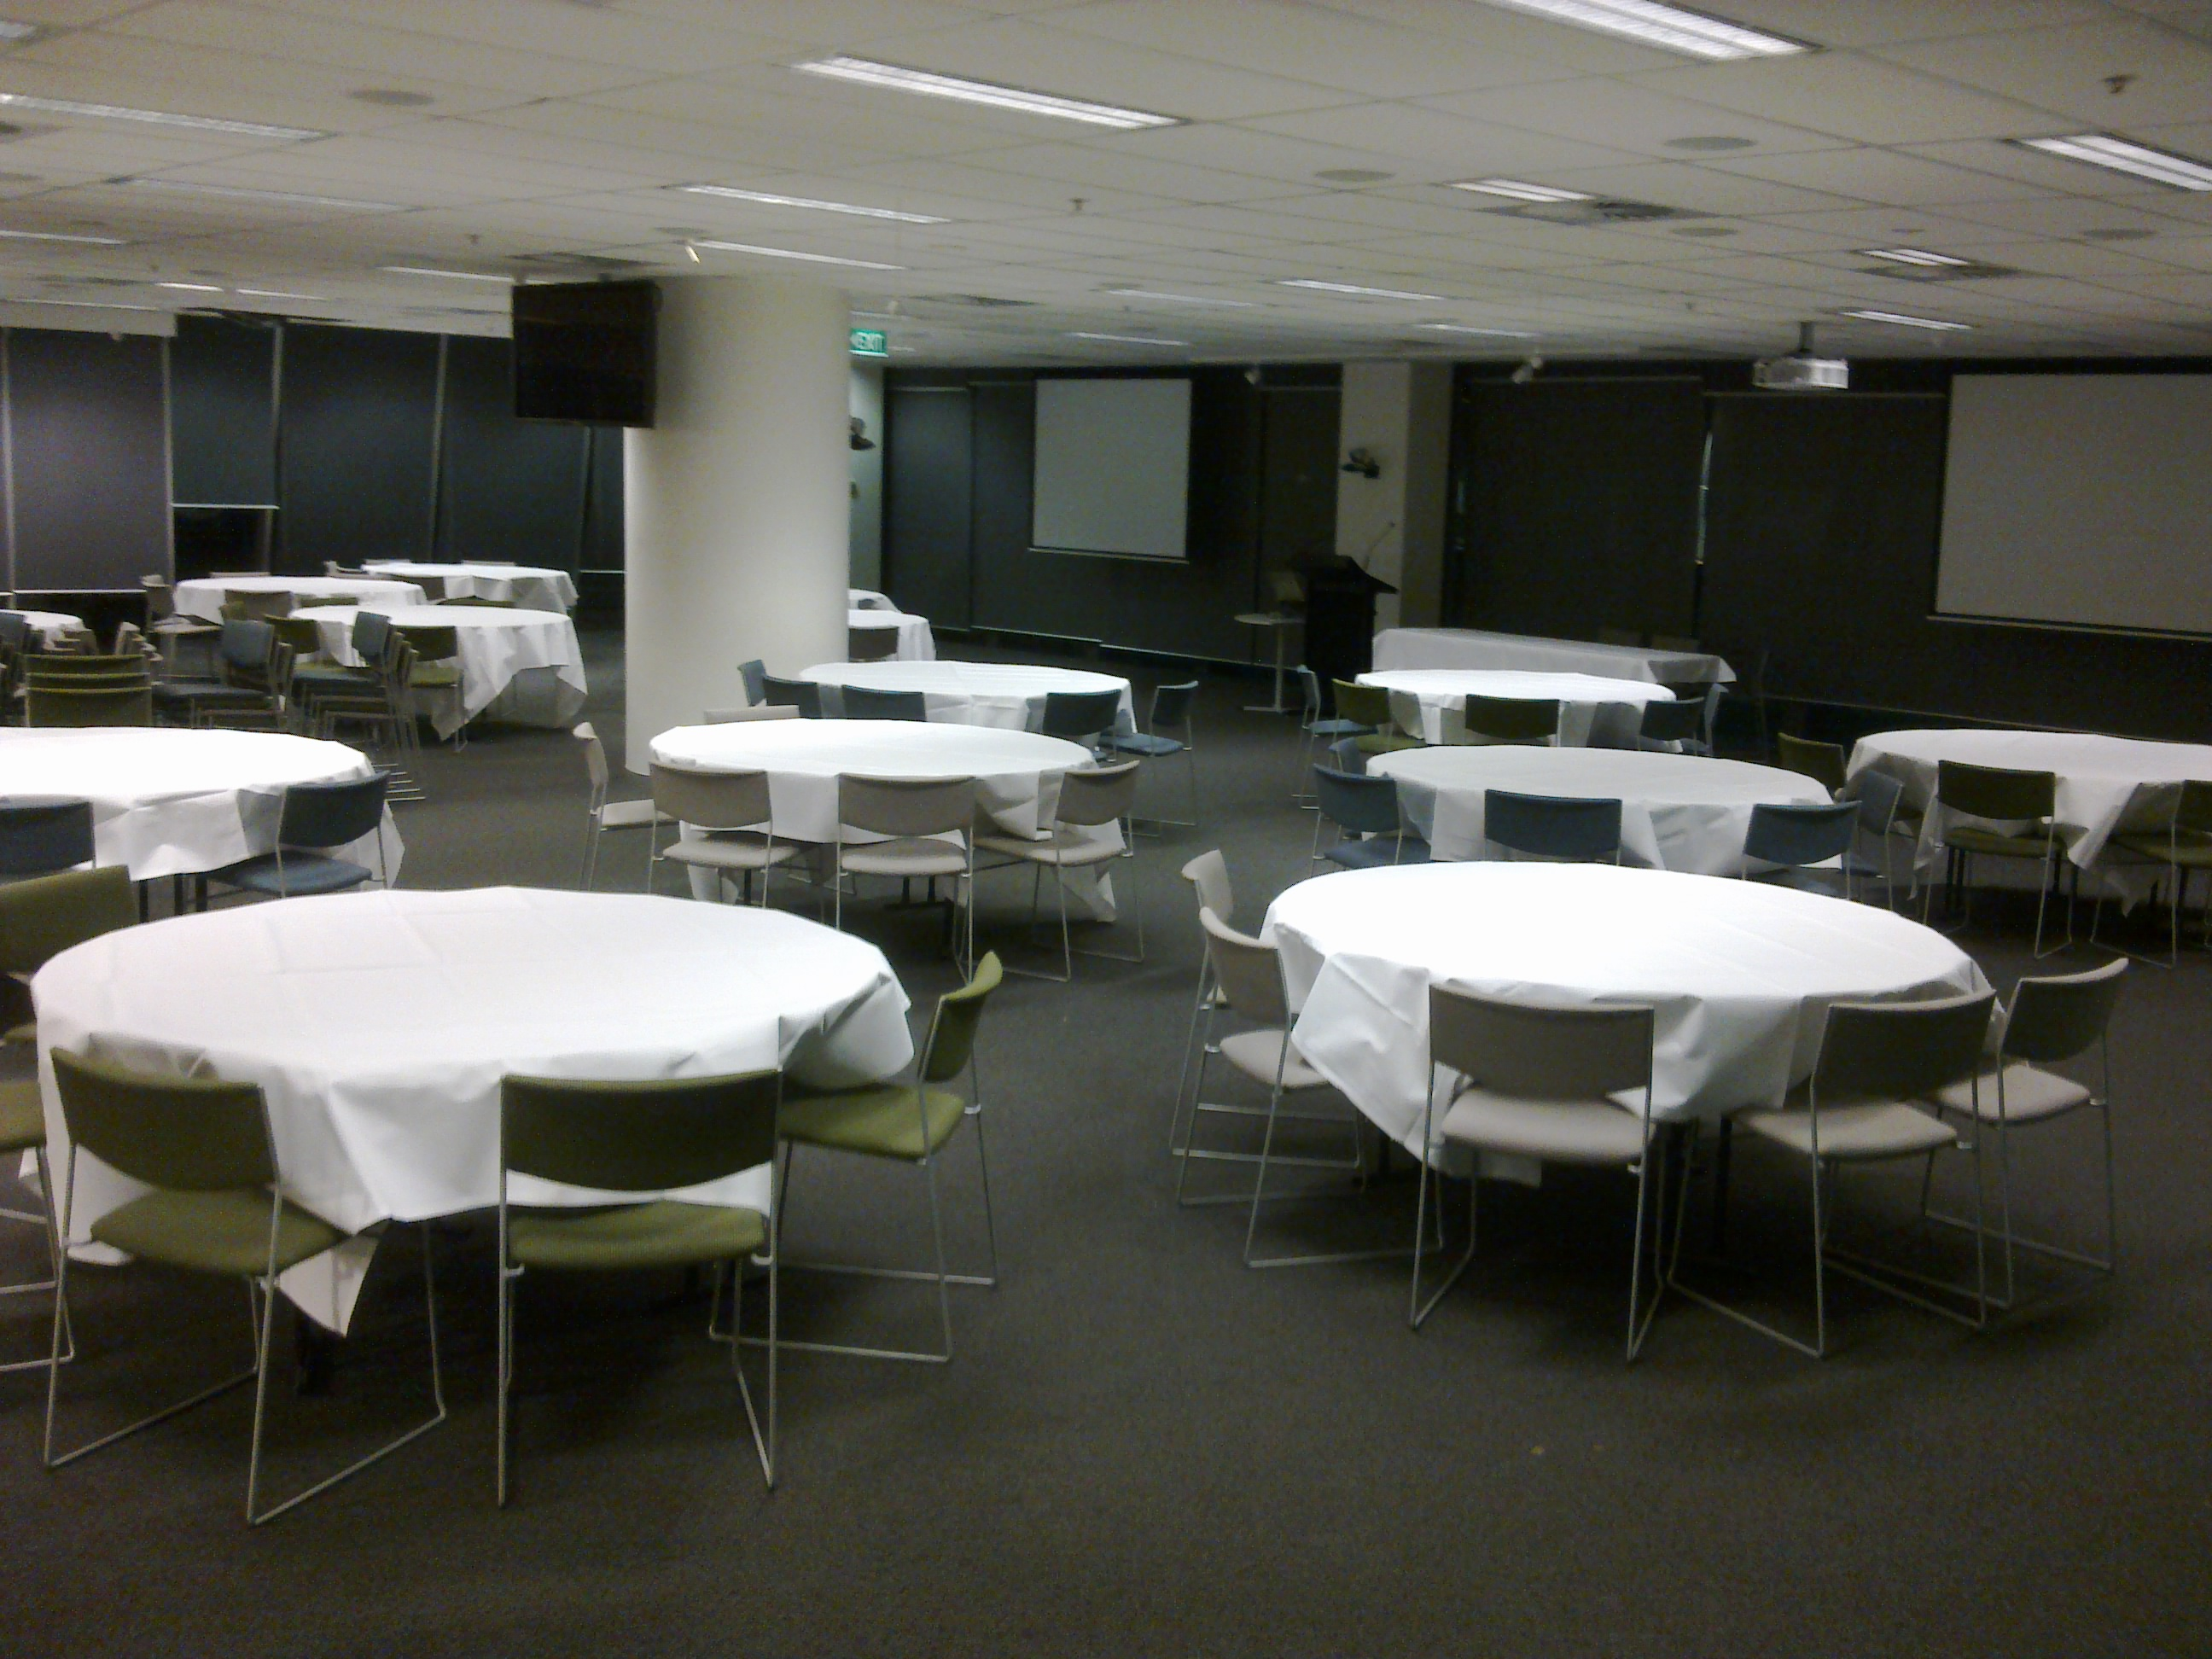 1 65m Laminated Round Table Melbourne Table Amp Chair Hire